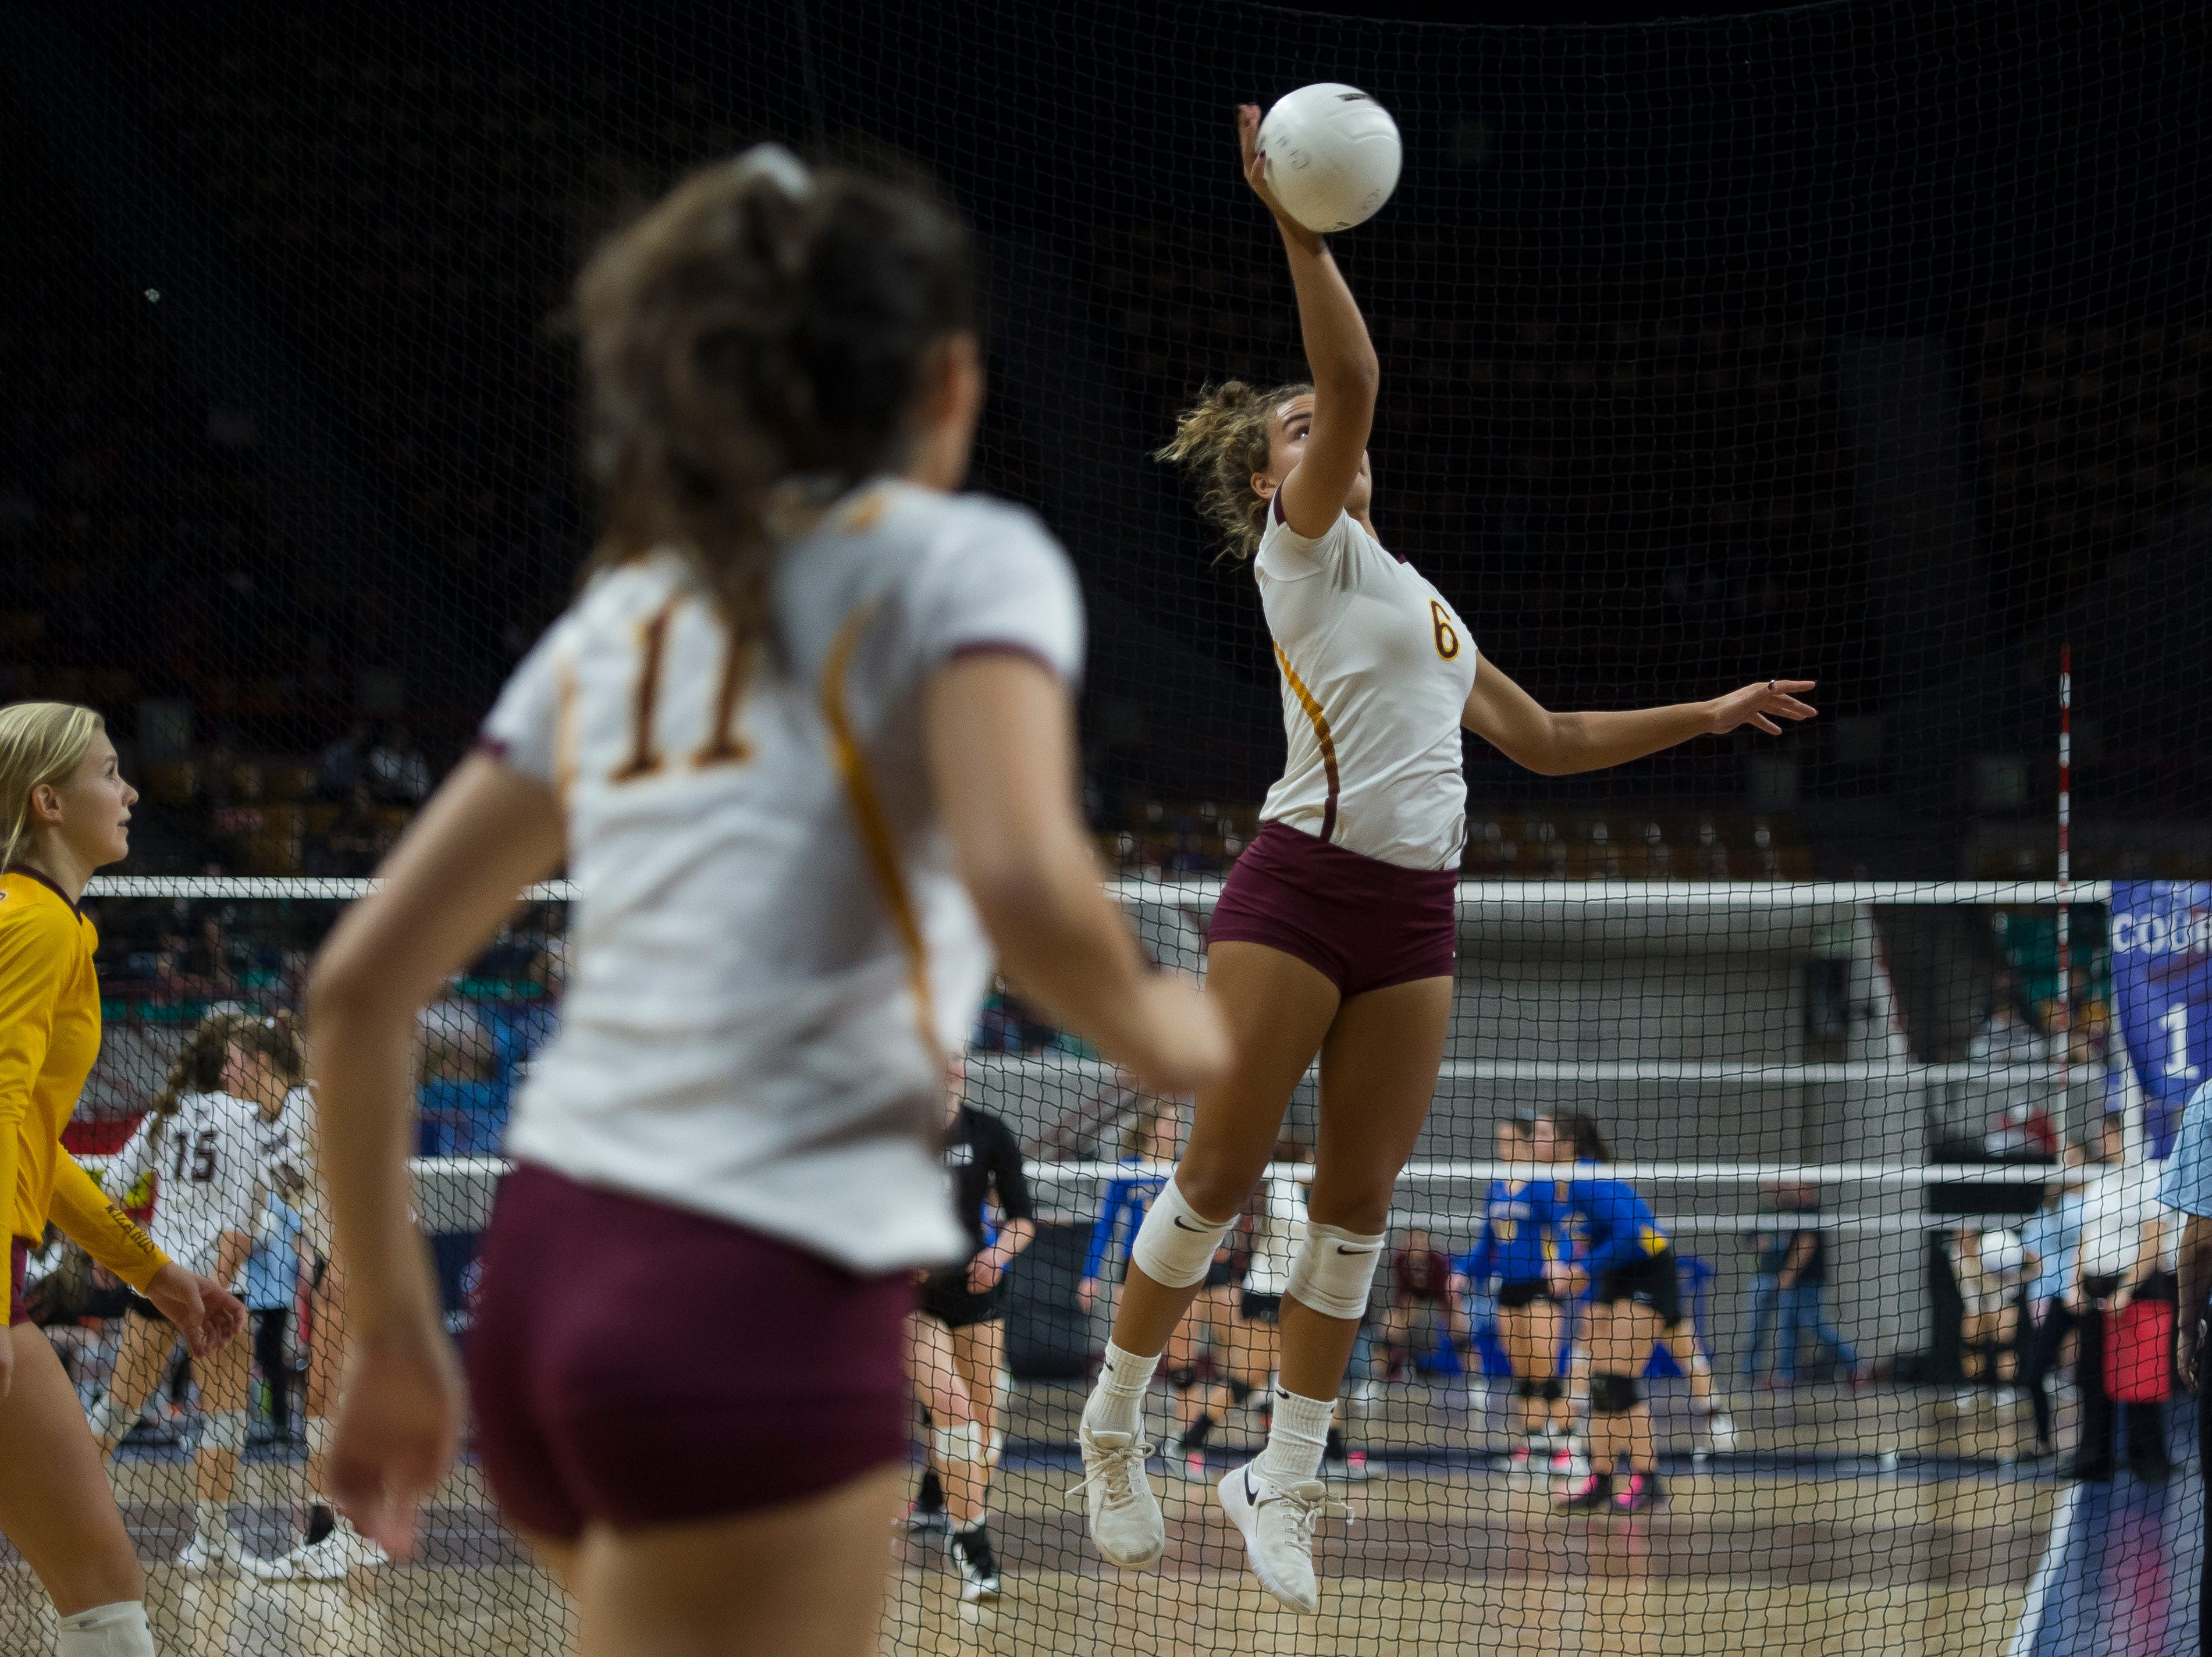 Windsor High School senior Ally Kennis (6) spikes the ball during a state first round game against Fossil Ridge High School on Thursday, Nov. 8, 2018, at the Denver Coliseum in Denver, Colo.